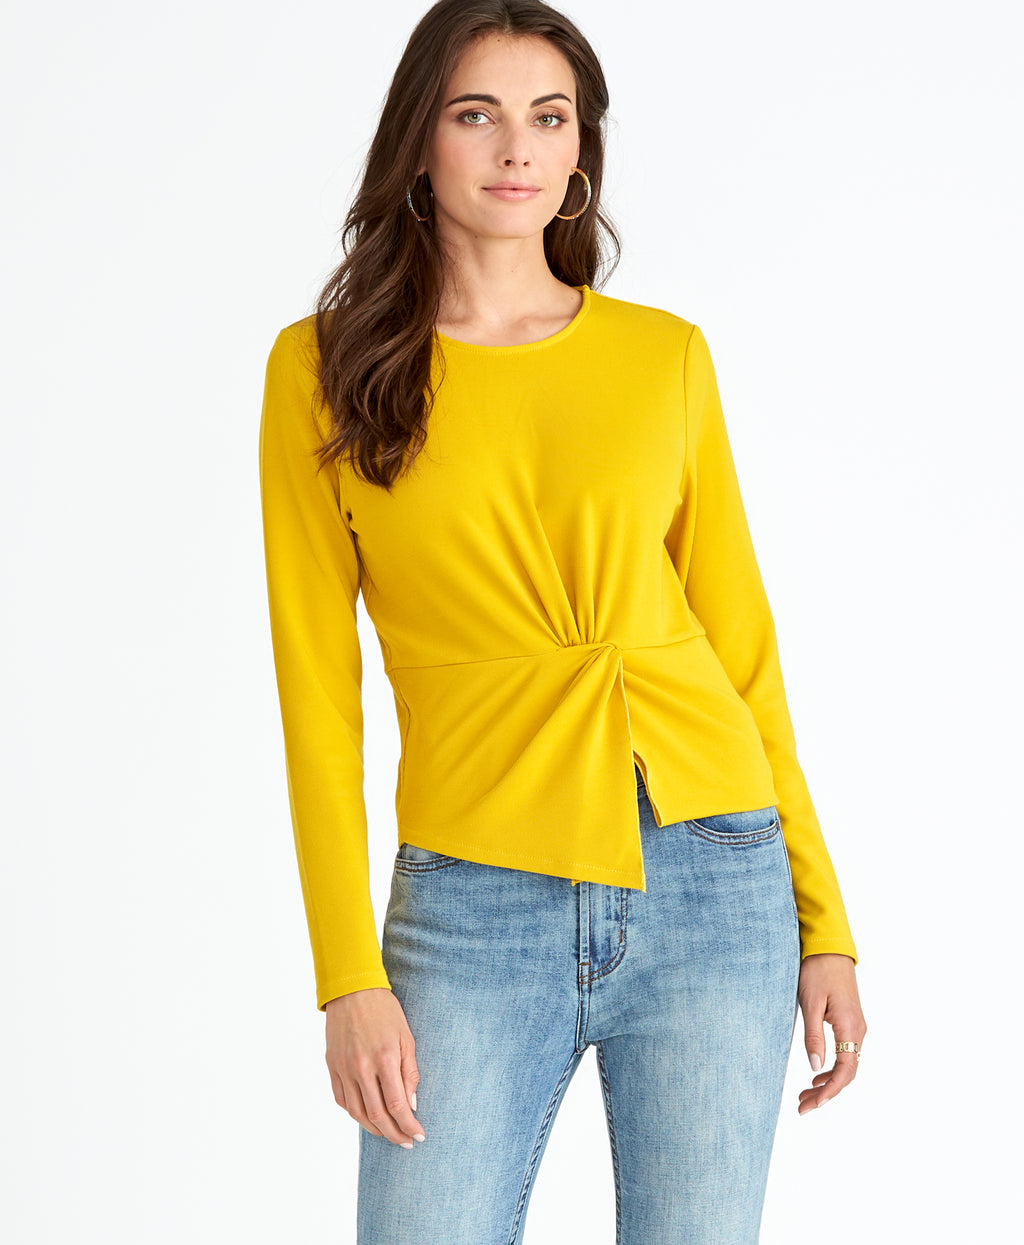 Val Top | VIBRANT CANARY